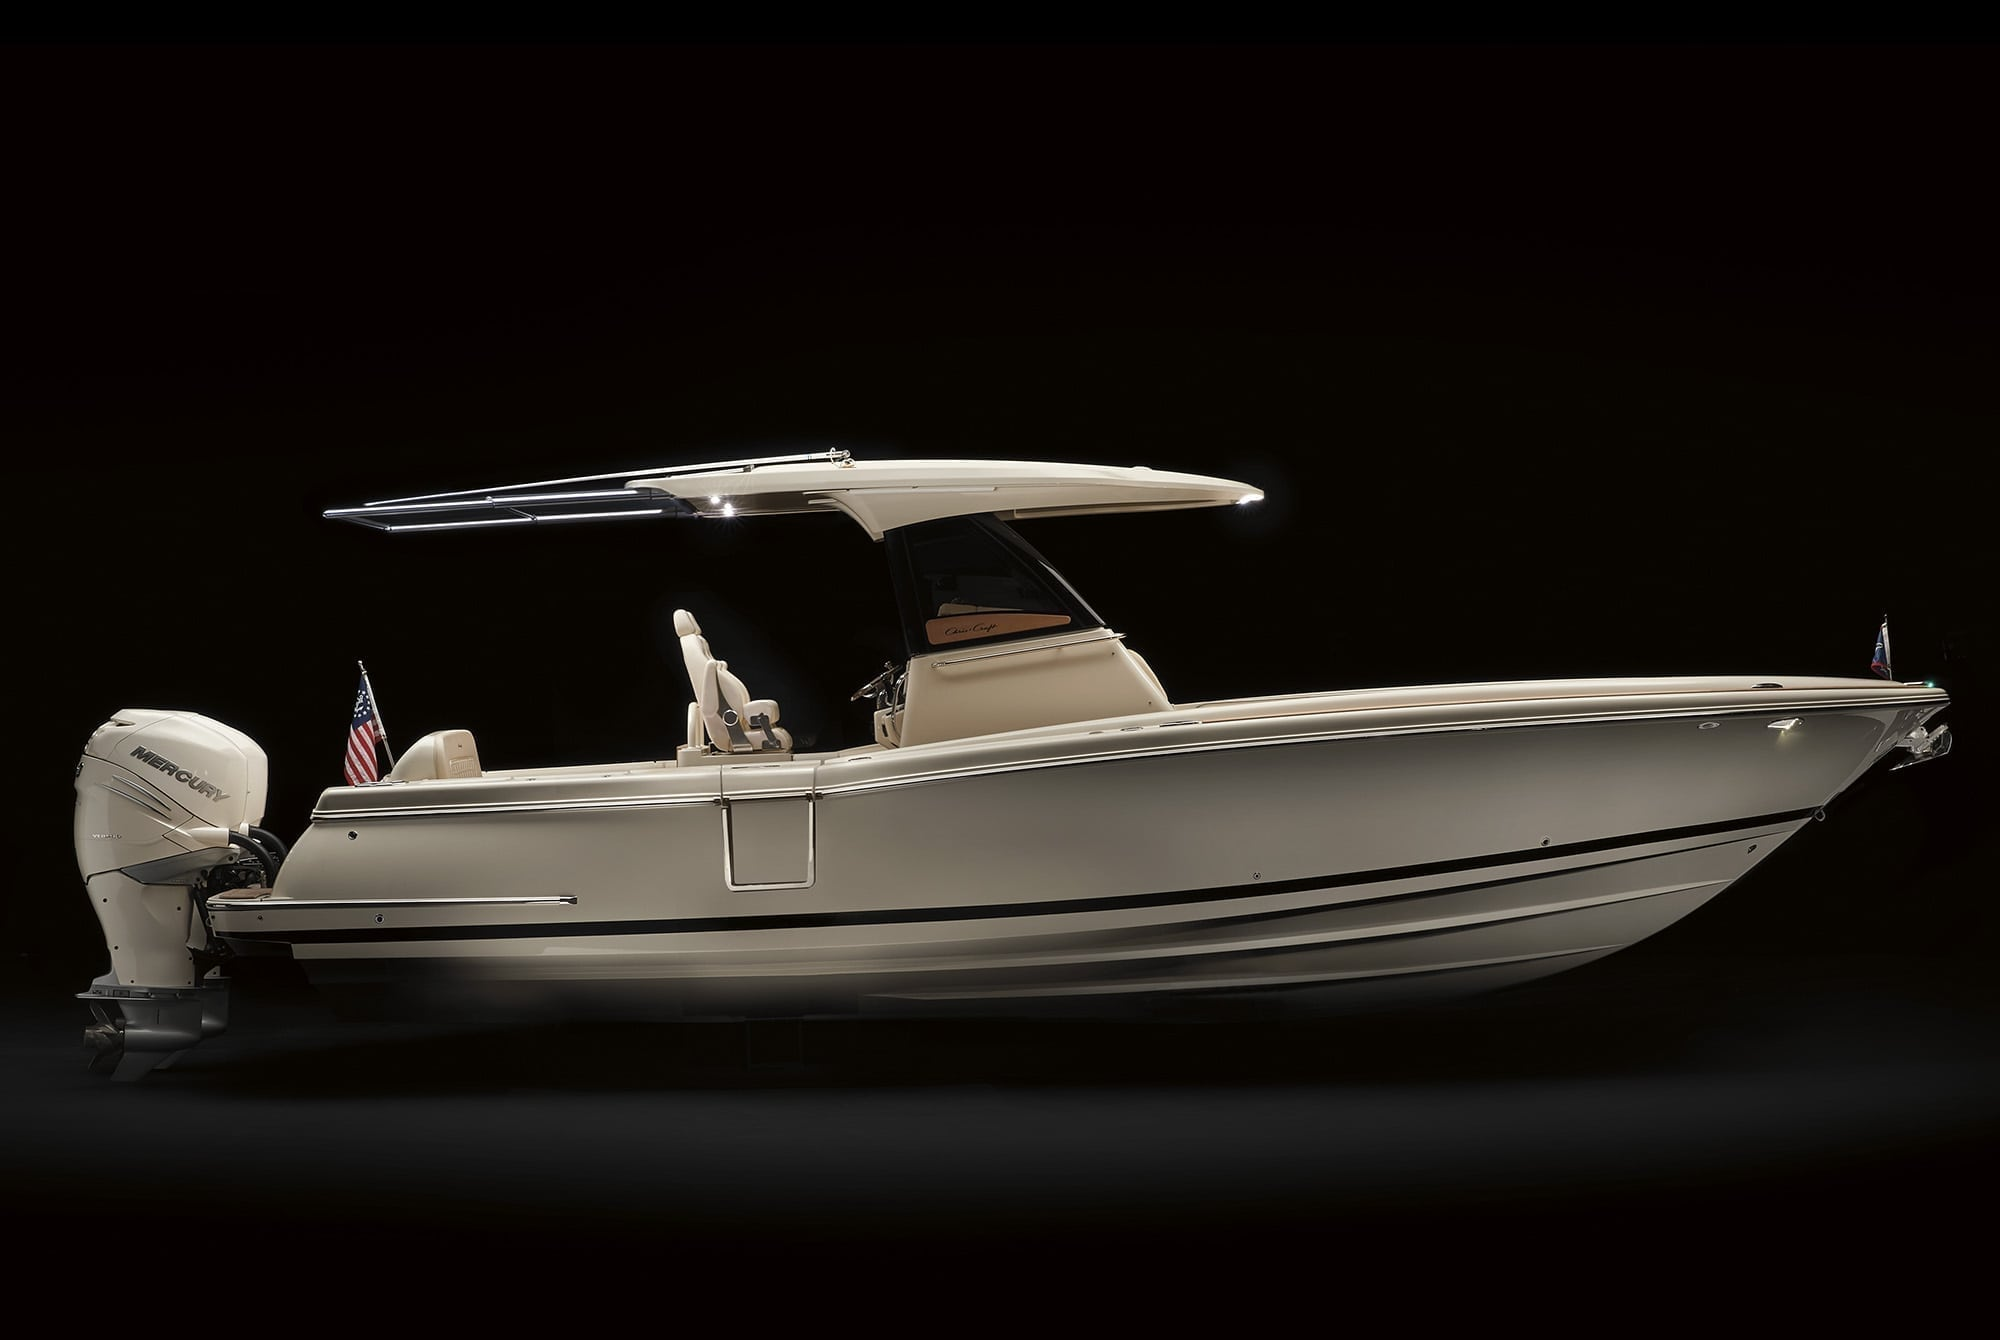 Chris Craft Catalina 29 Low Angle SIde Profile View